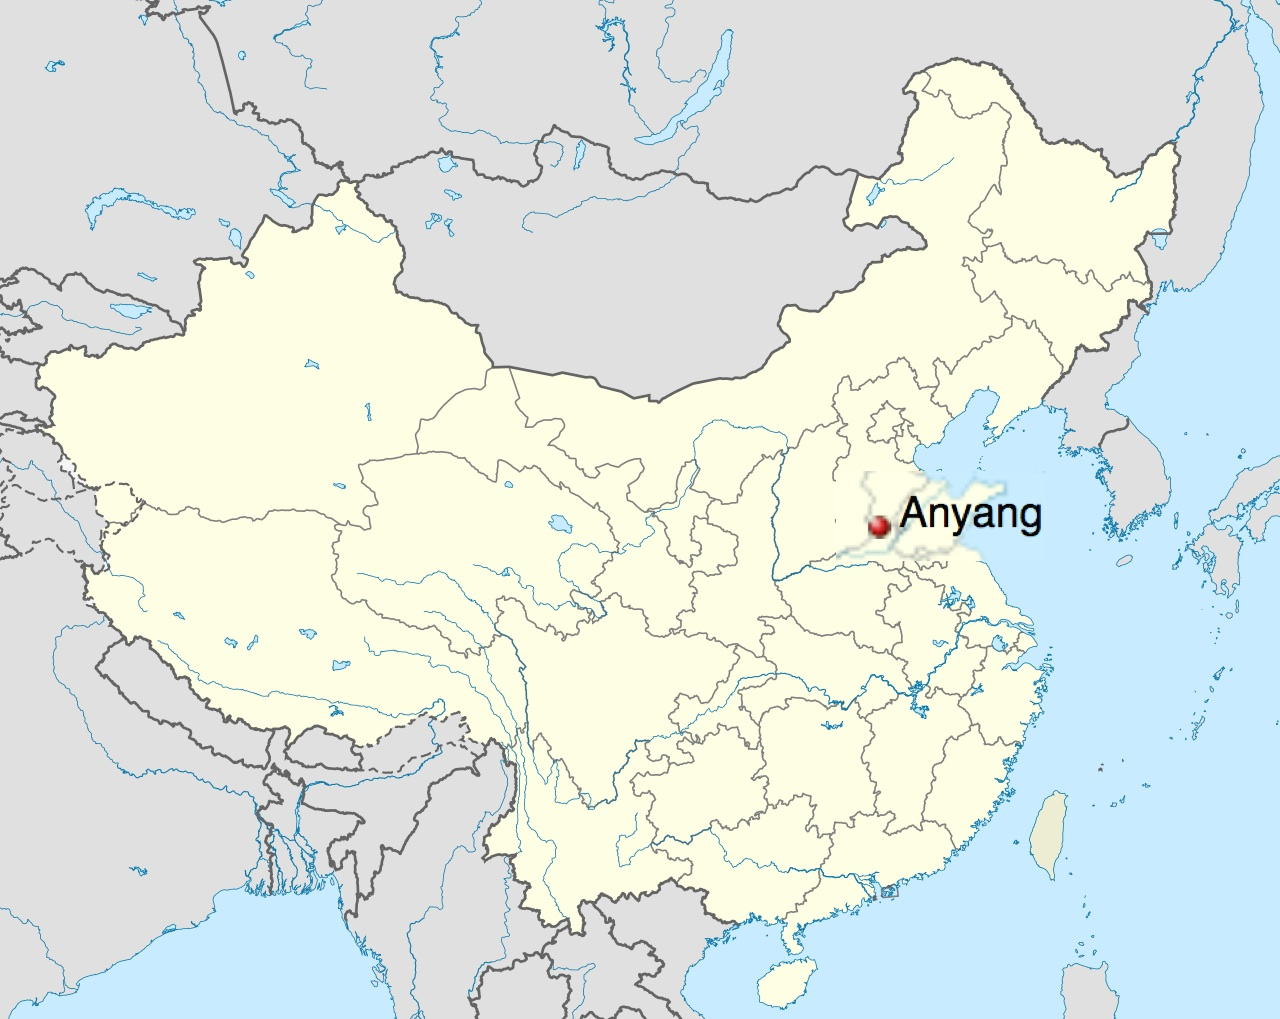 Map of China - Anyang